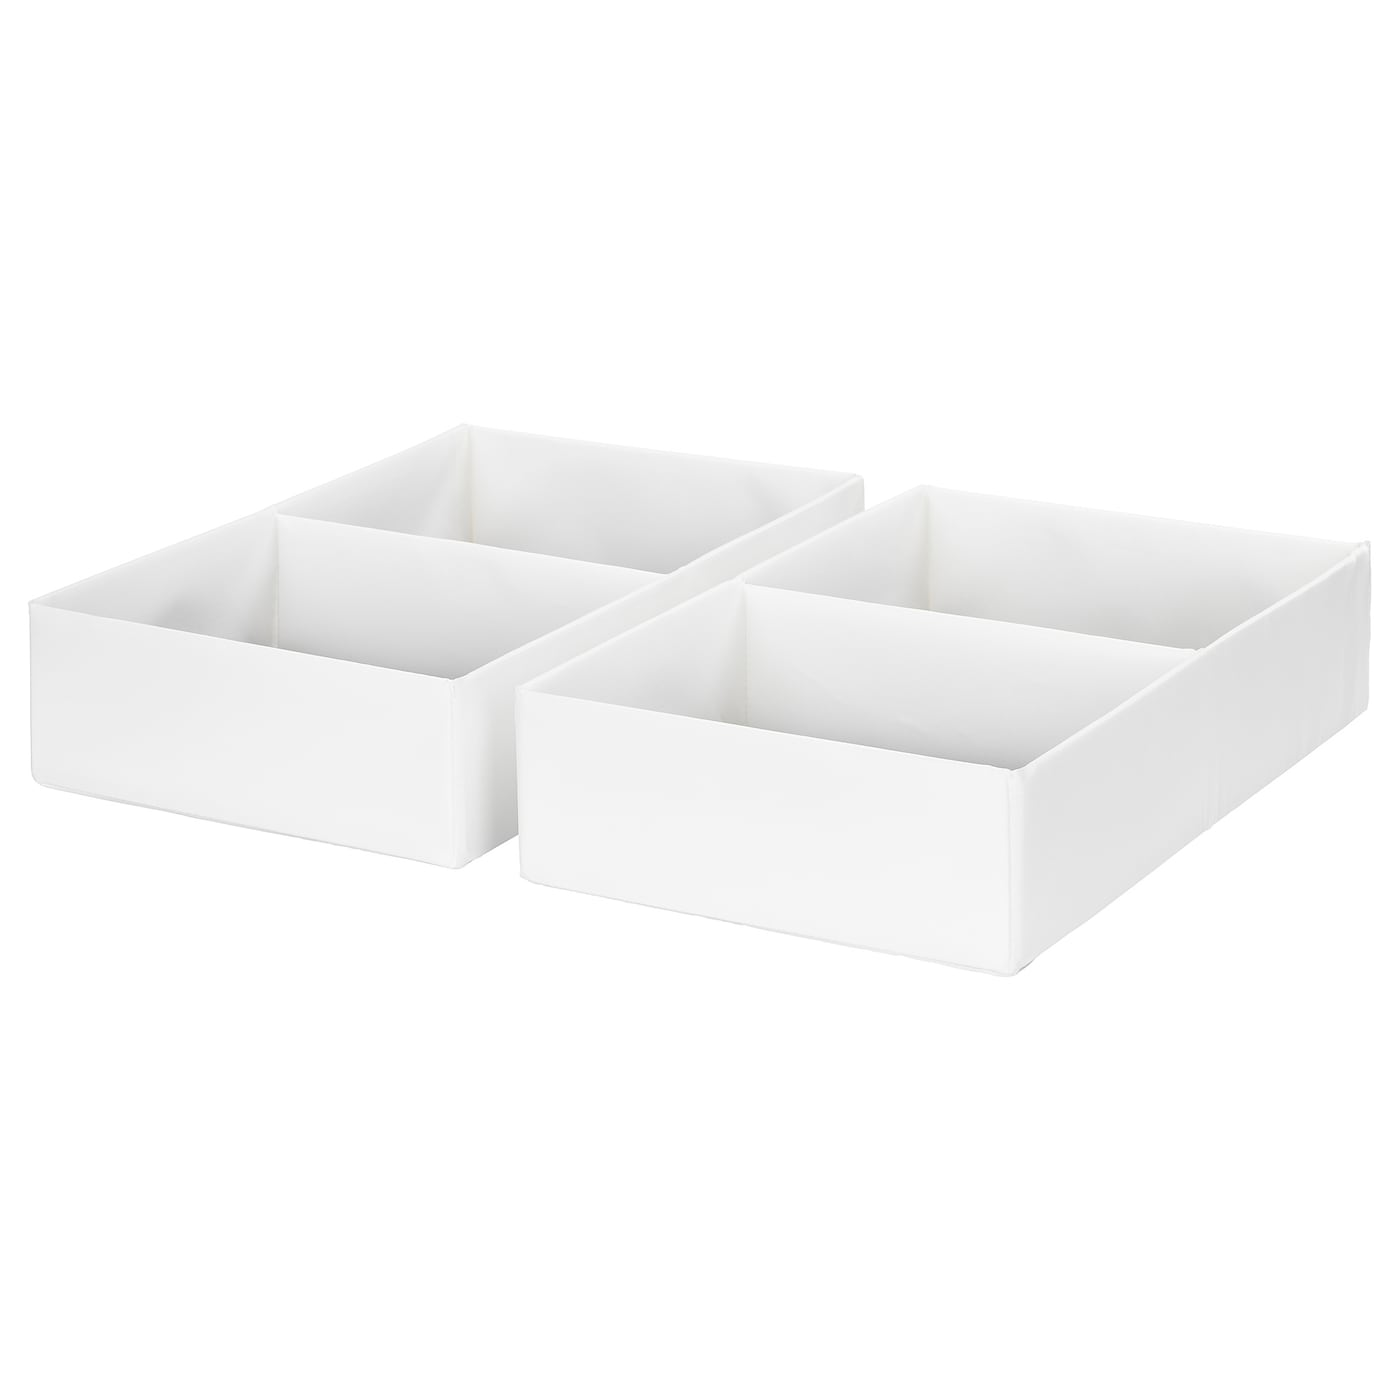 IKEA RASSLA box with compartments Can be folded to save space when not in use.